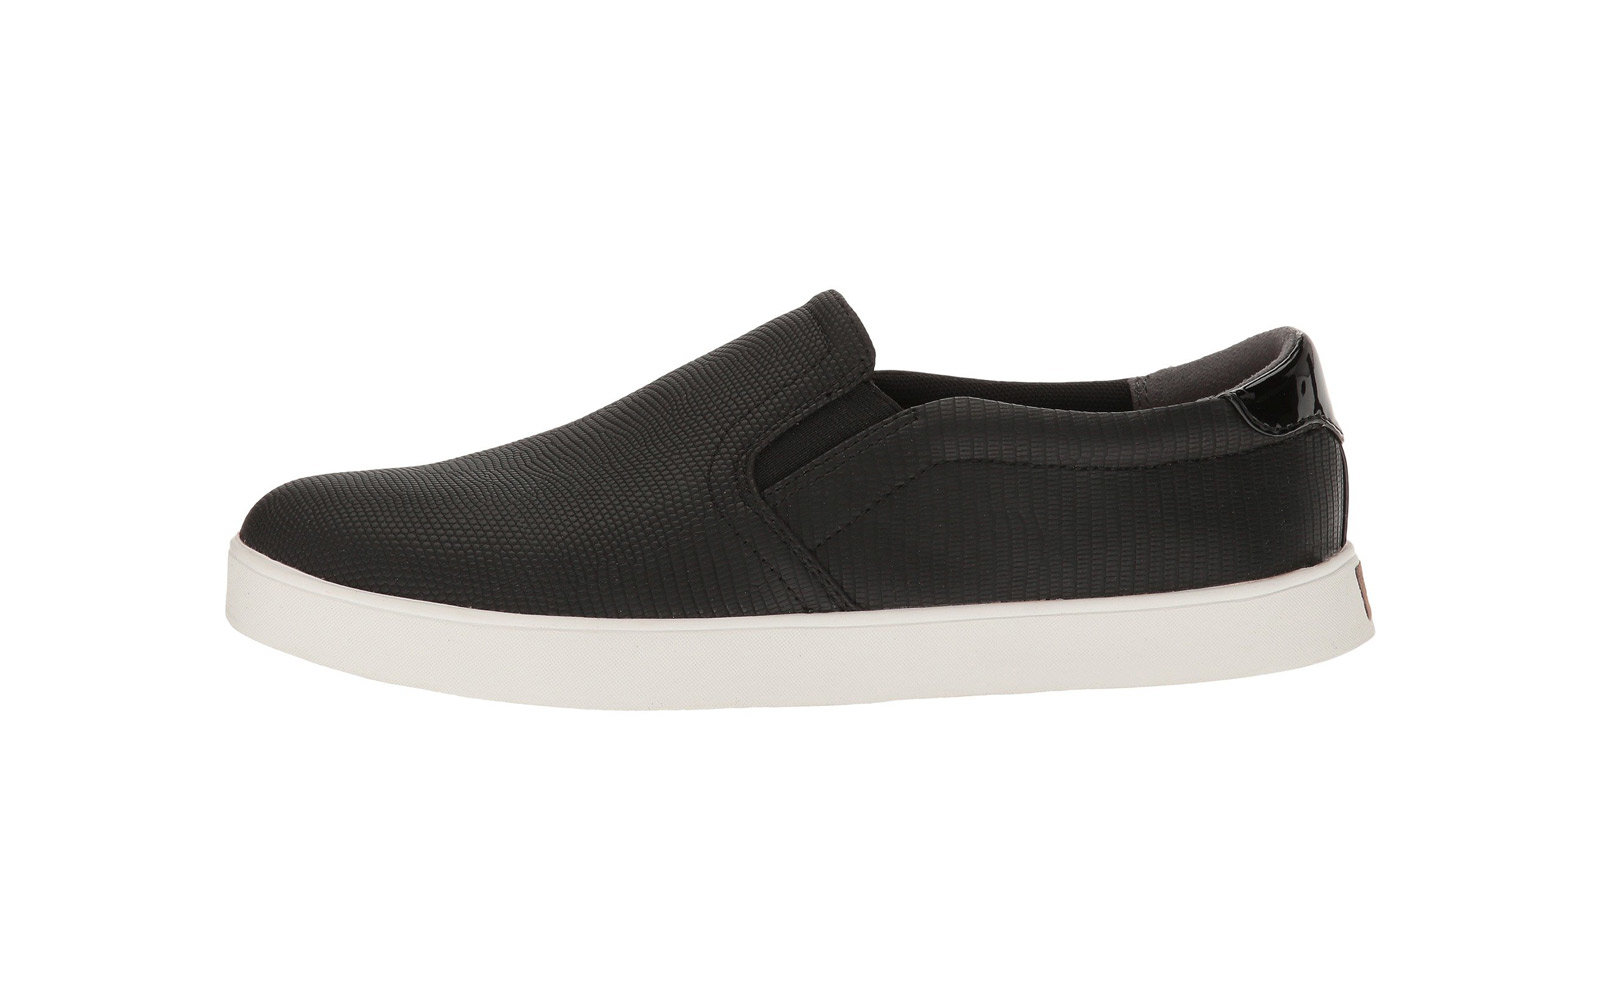 arch support shoes for women dr scholls